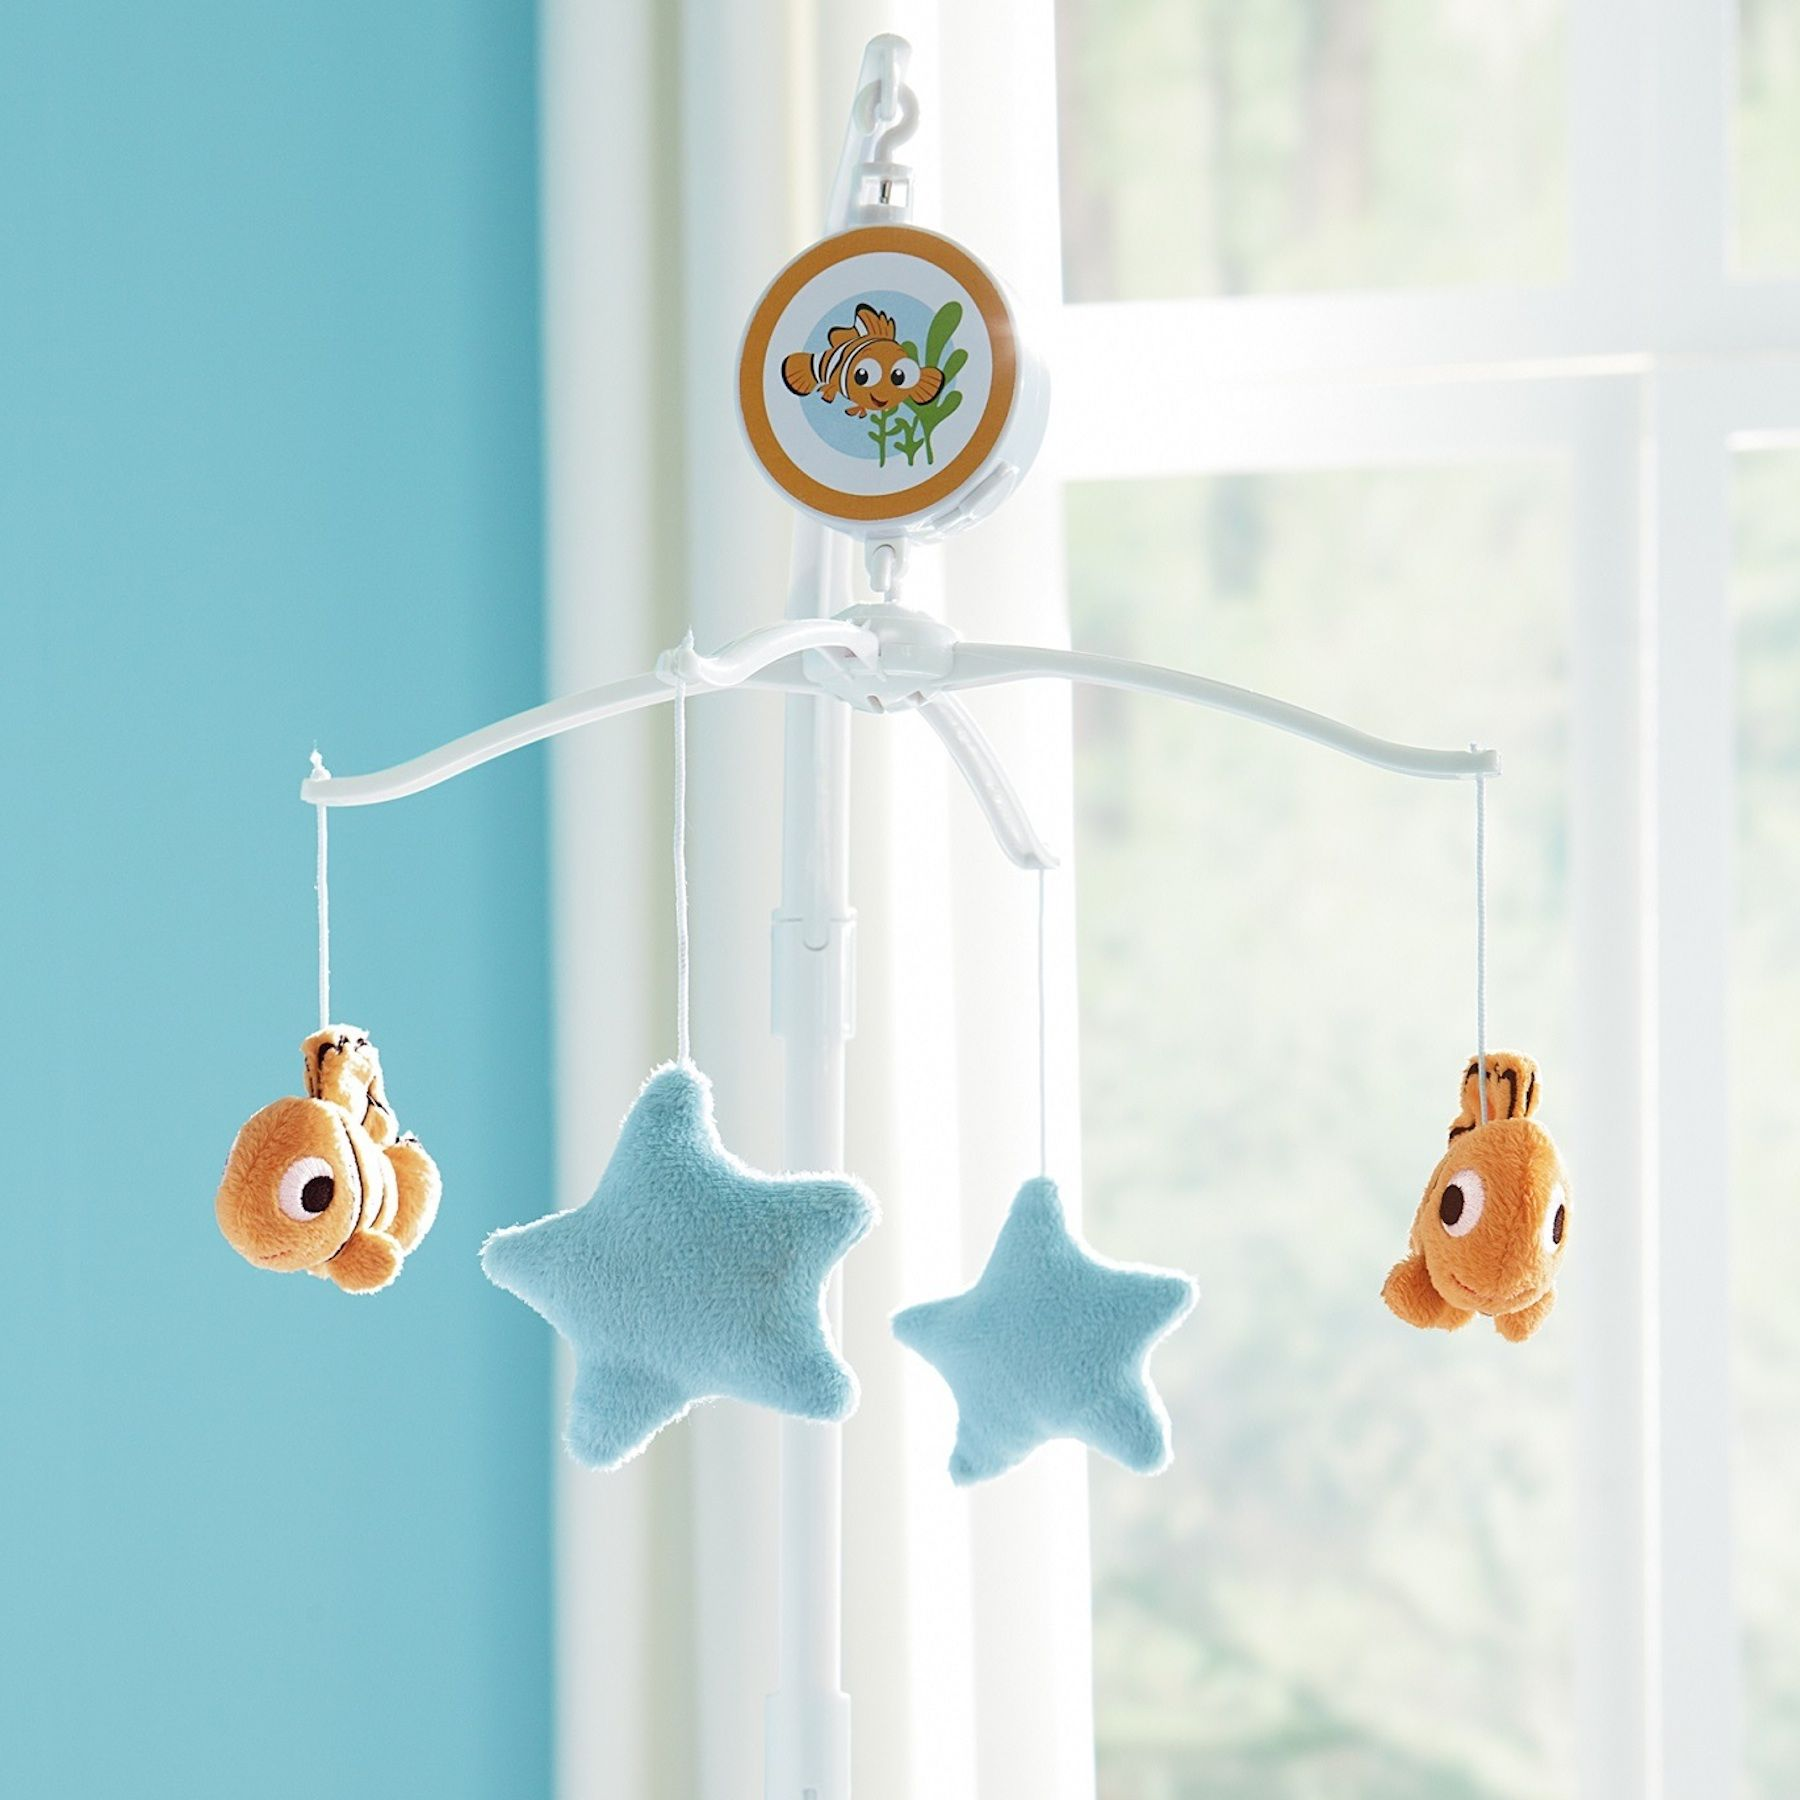 Nemo s reef 4 piece crib bedding set disney baby - Find This Pin And More On Baby Grantzy By Kristilemmon